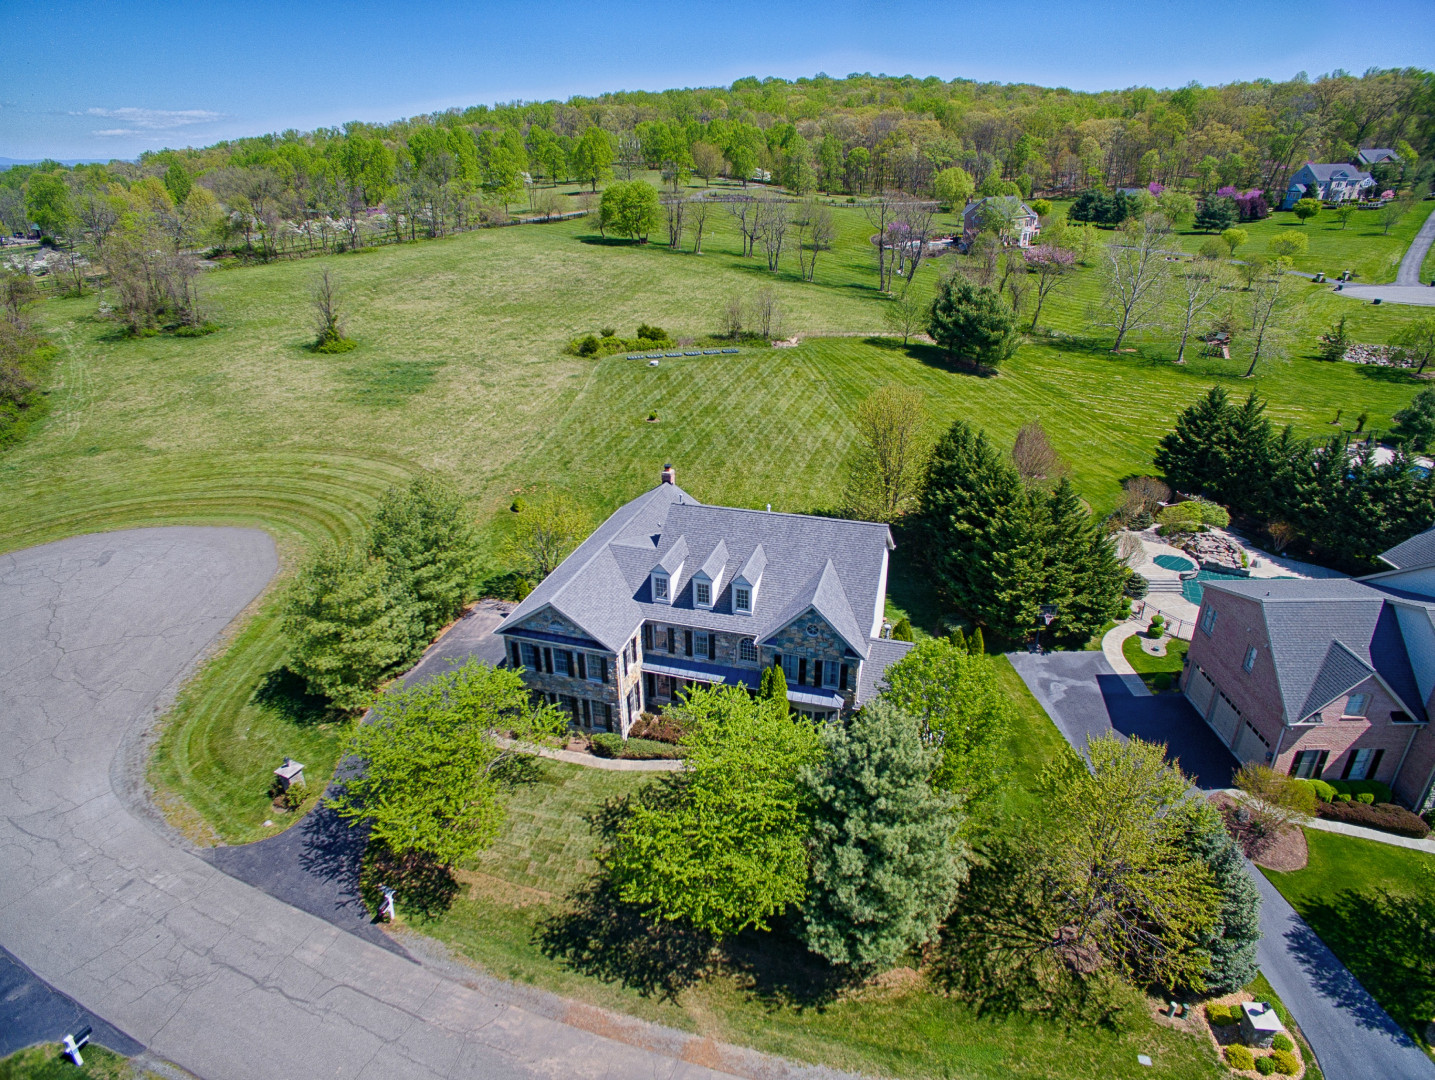 Single Family Home for Sale at Stylish Country Estate 40276 Iron Liege Court Leesburg, Virginia, 20176 United States